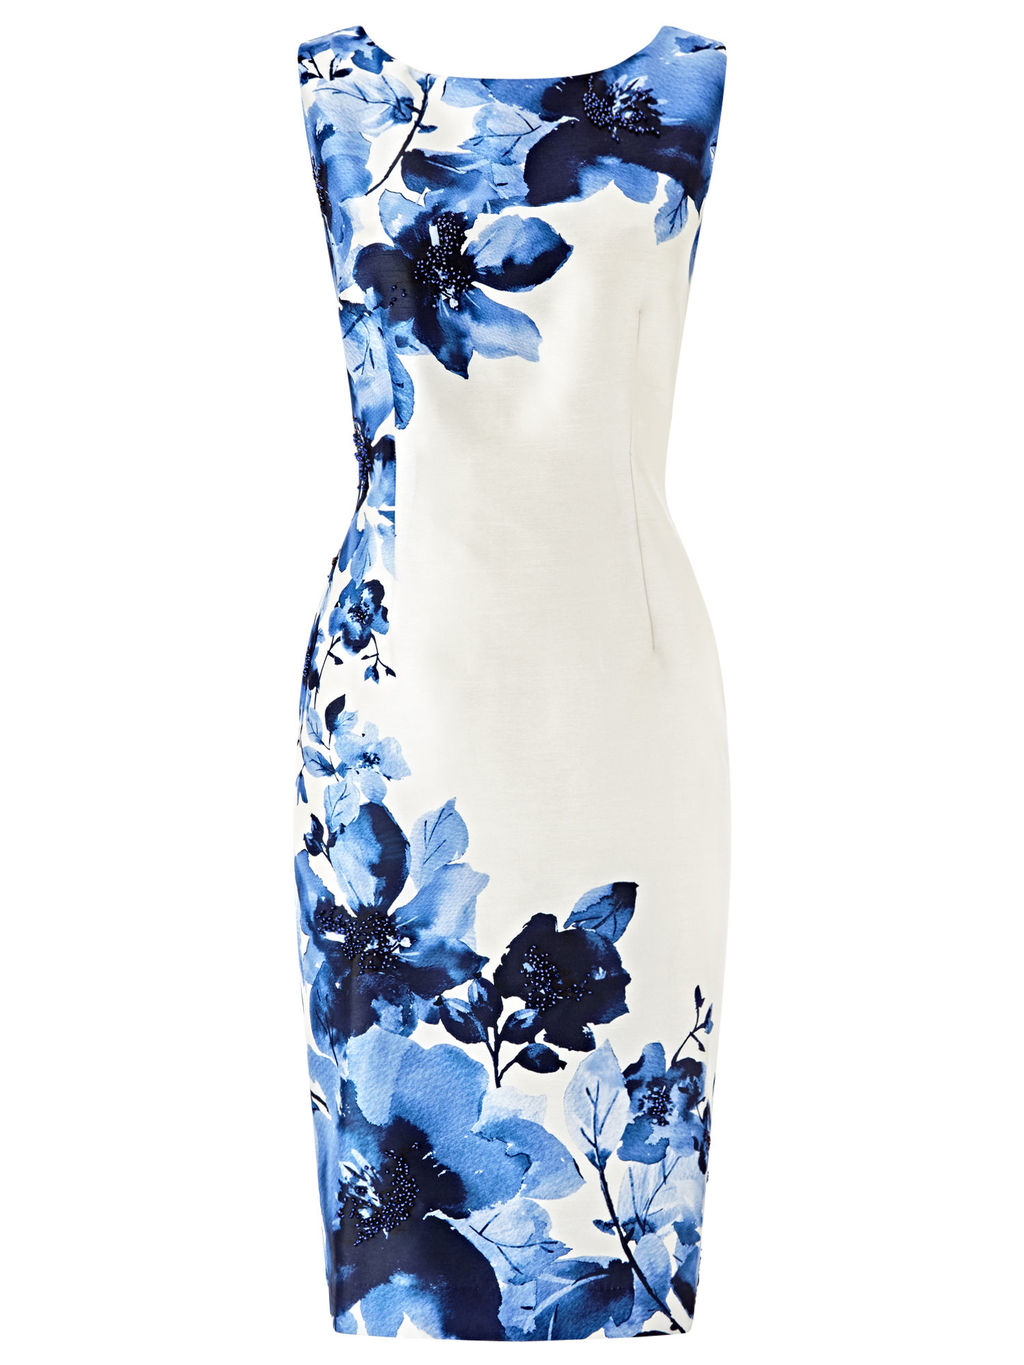 Digital Print Bead Detail Dress, Cream/Blue - style: shift; neckline: round neck; sleeve style: sleeveless; predominant colour: ivory/cream; secondary colour: navy; occasions: evening; length: just above the knee; fit: body skimming; fibres: polyester/polyamide - 100%; sleeve length: sleeveless; pattern type: fabric; pattern: florals; texture group: jersey - stretchy/drapey; multicoloured: multicoloured; season: s/s 2016; wardrobe: event